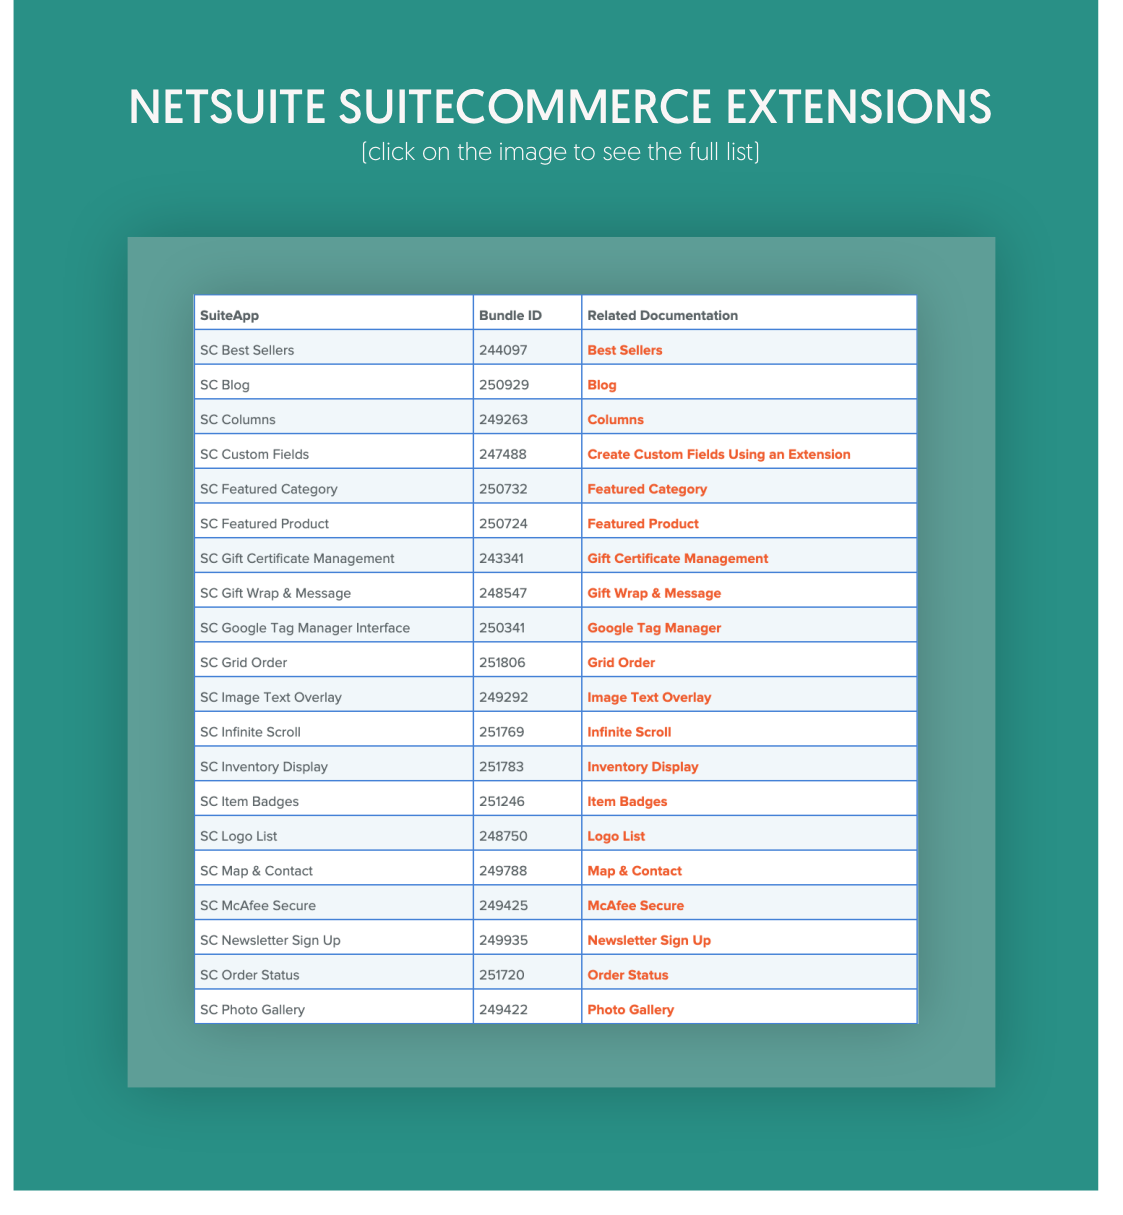 suitecommerce-blog-extension-netsuite-list-of-extensions-tavano-team